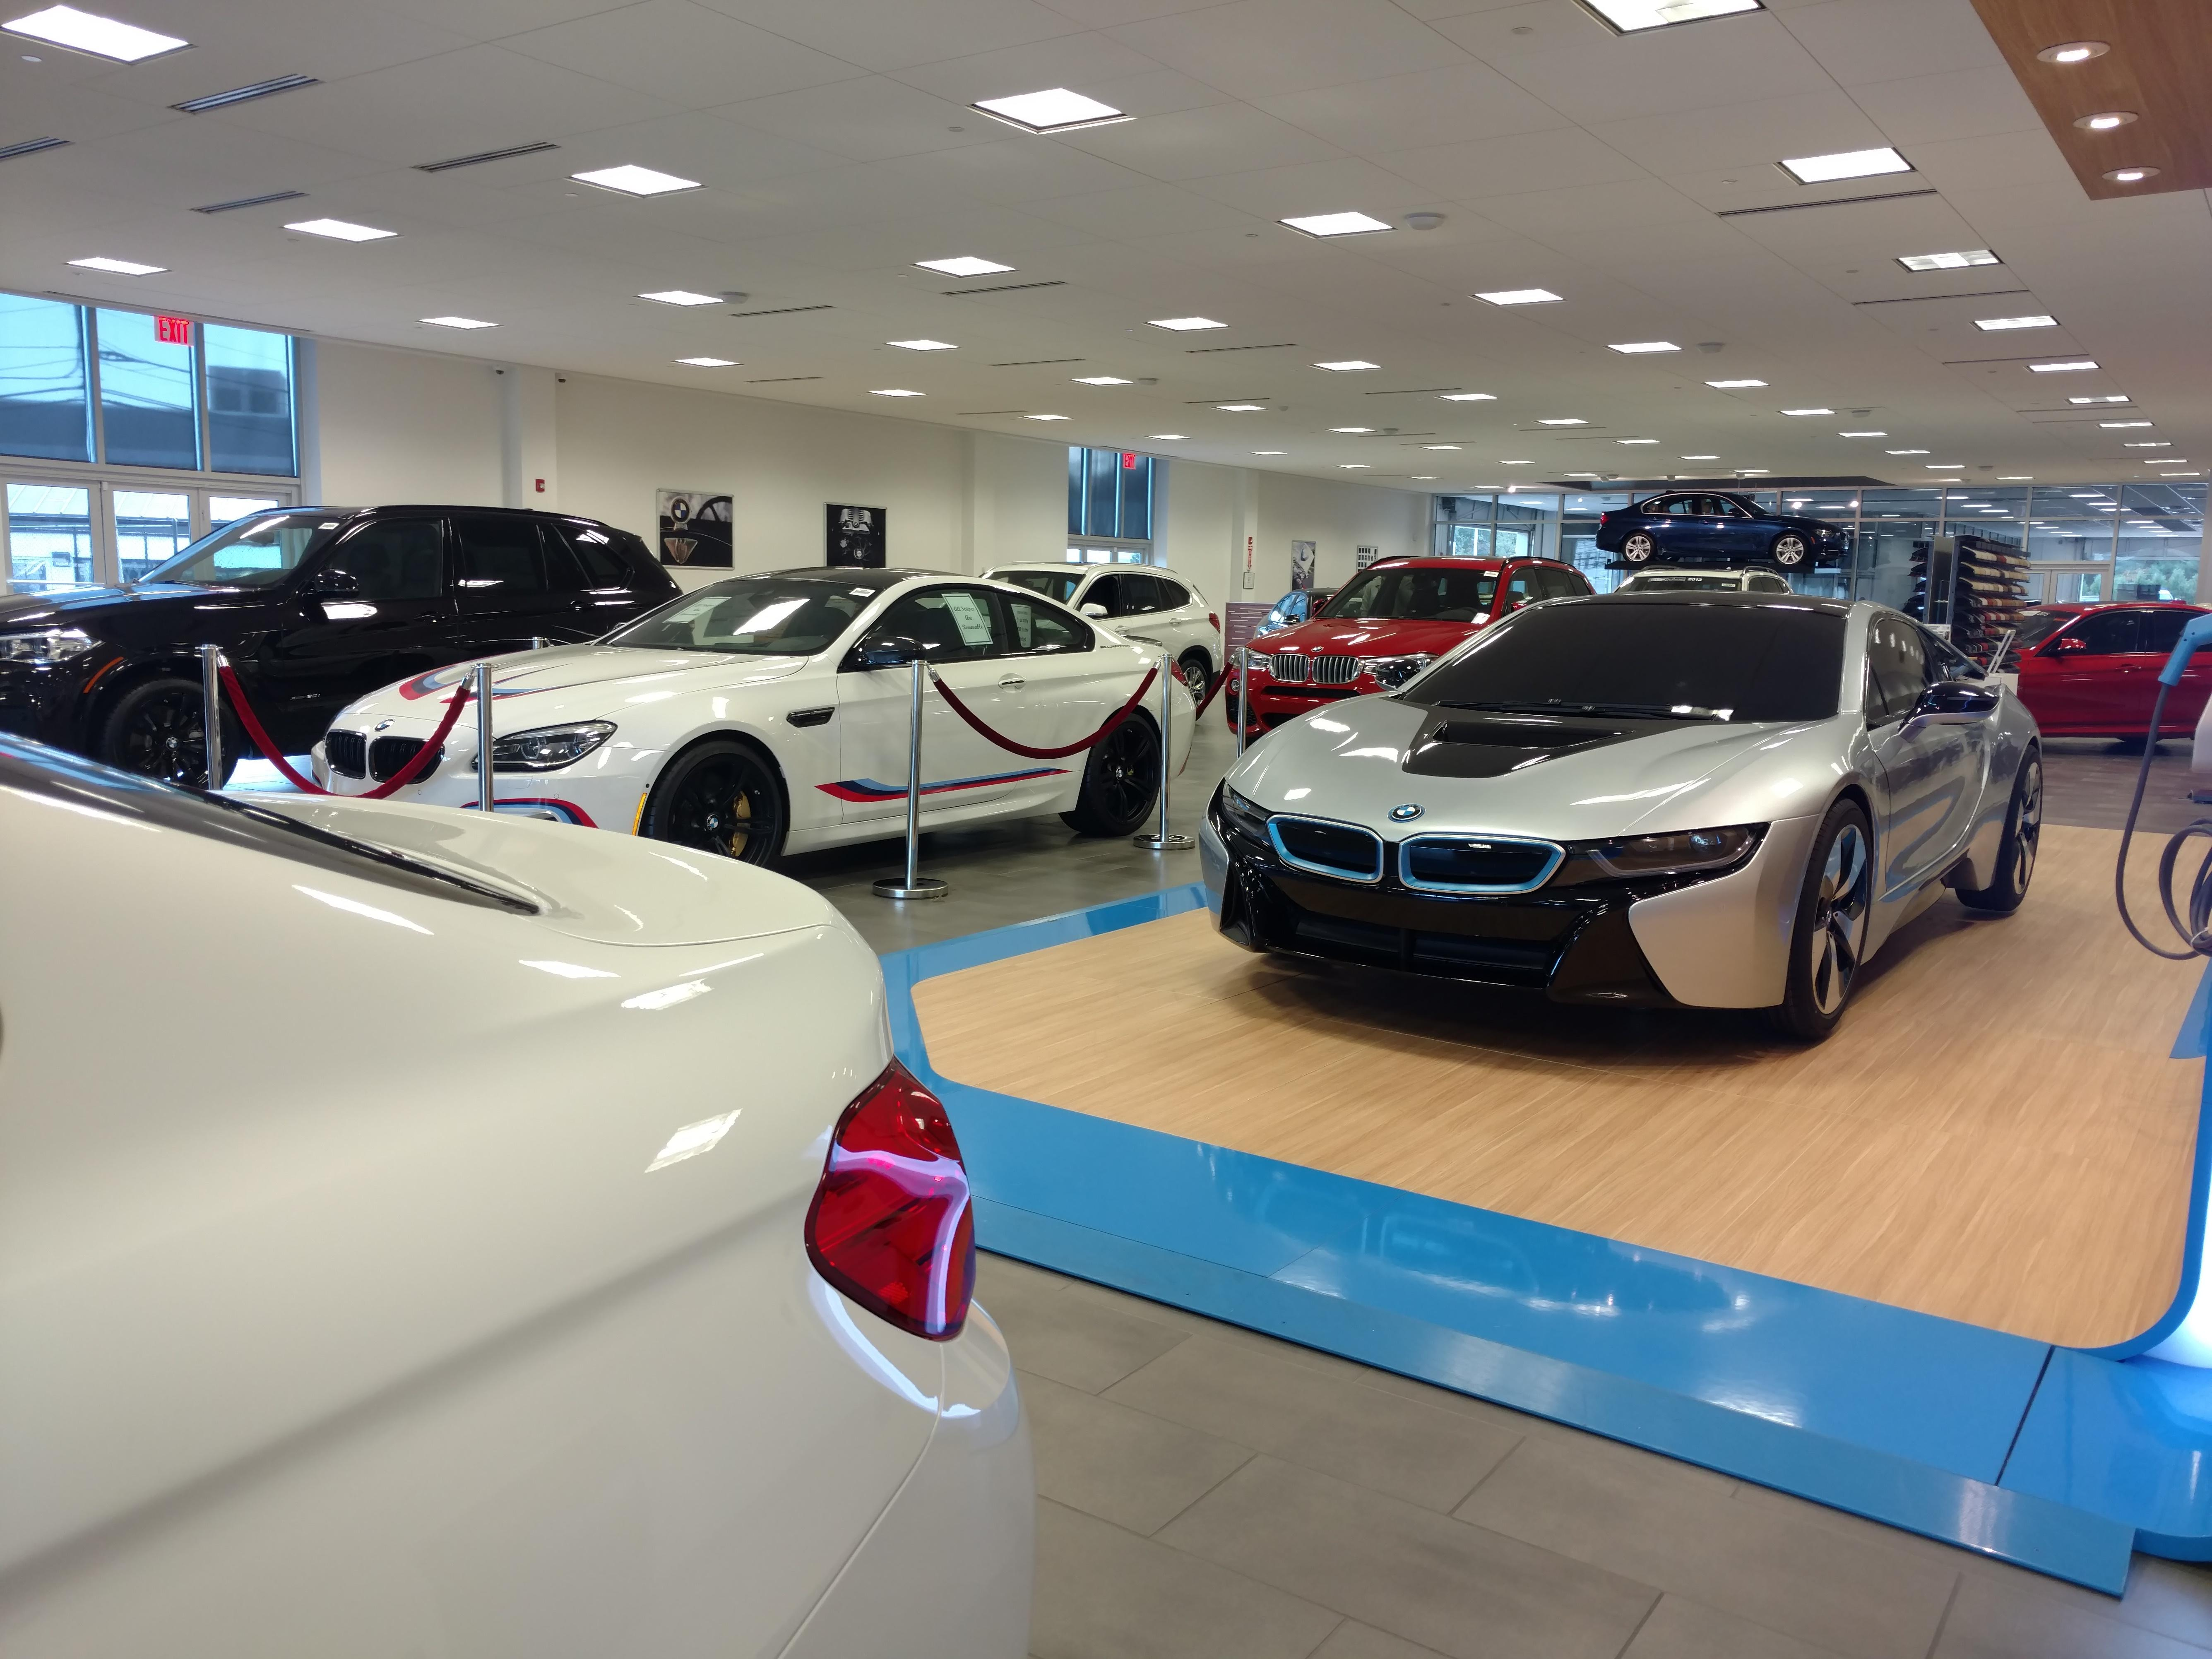 best florida car the bmw dealers sale old for nj in classified cars used